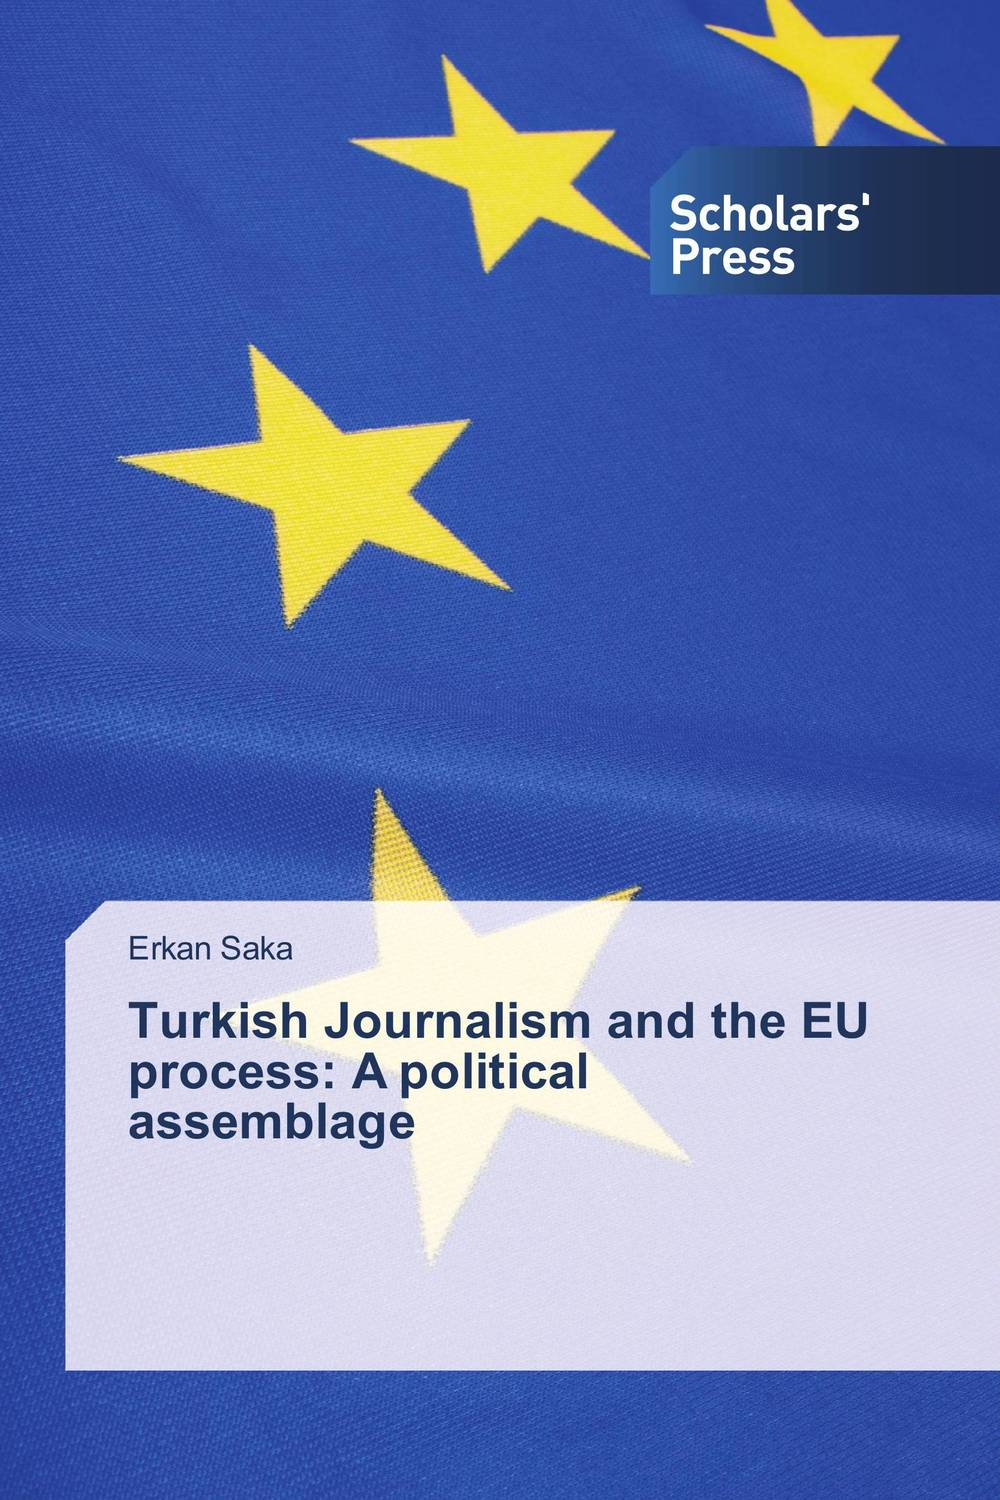 Turkish Journalism and the EU process: A political assemblage 如影随形:无处不在的无线电波